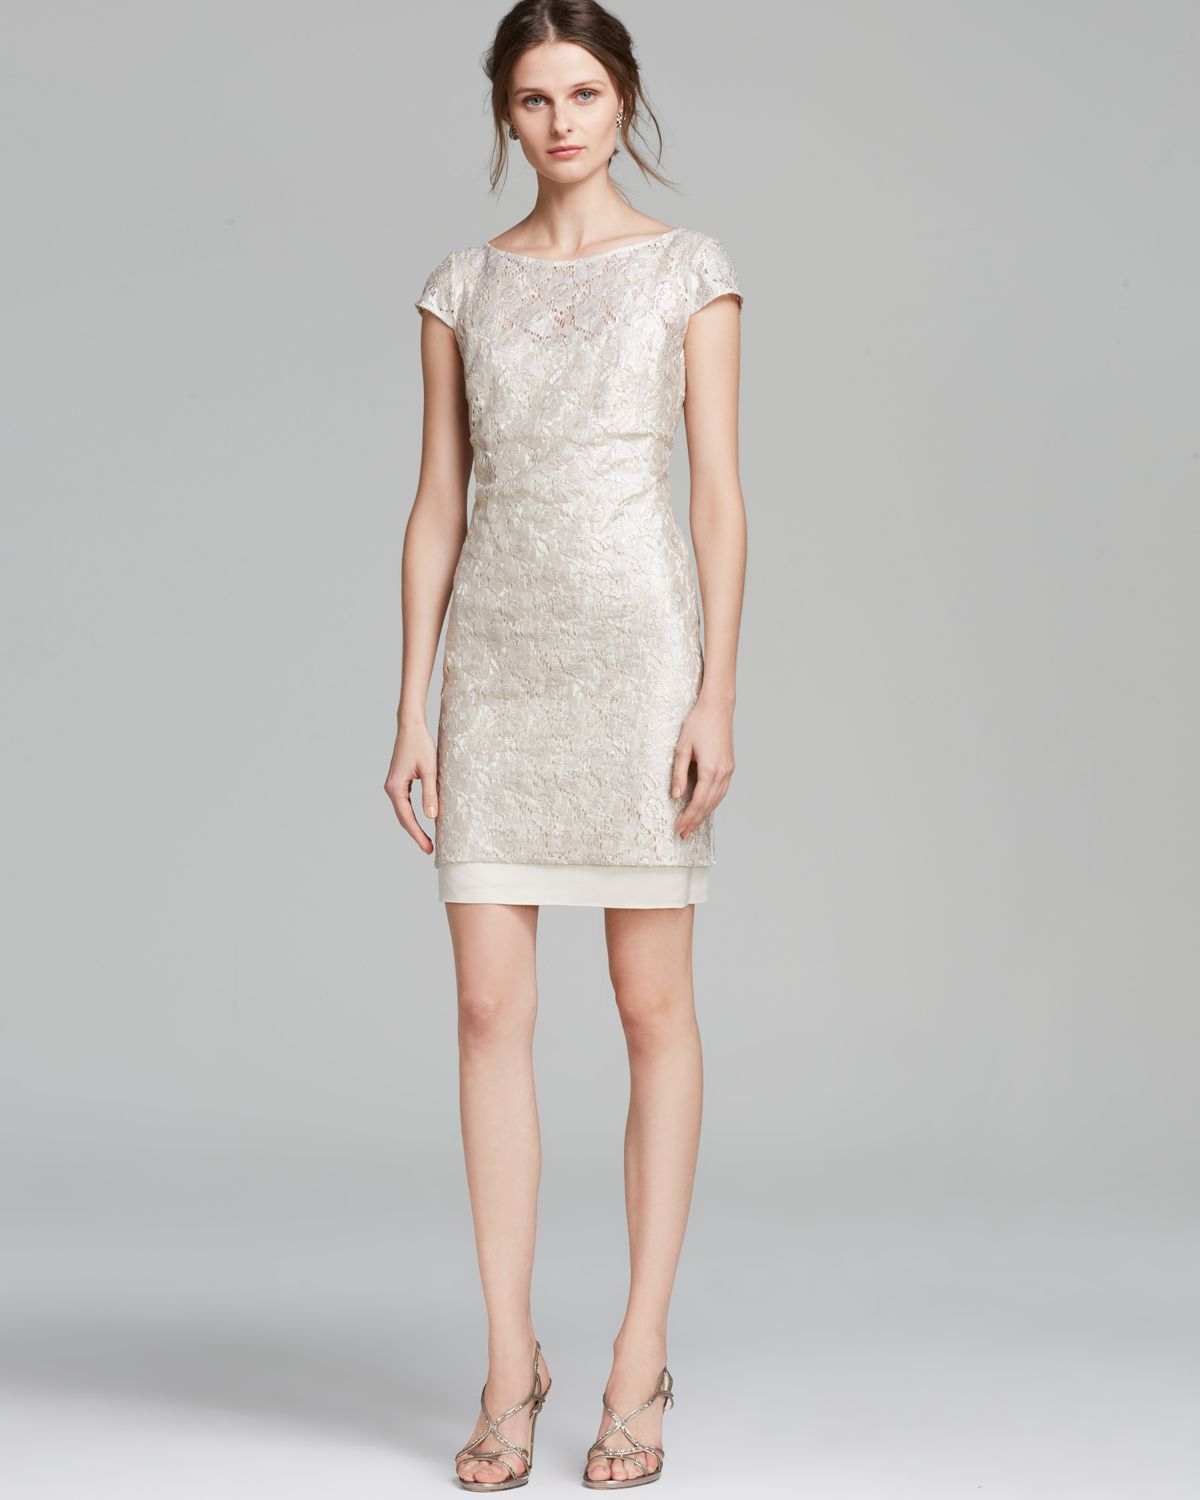 493fa65c Kay Unger Dress Cap Sleeve Metallic Lace Sheath in Natural - Lyst